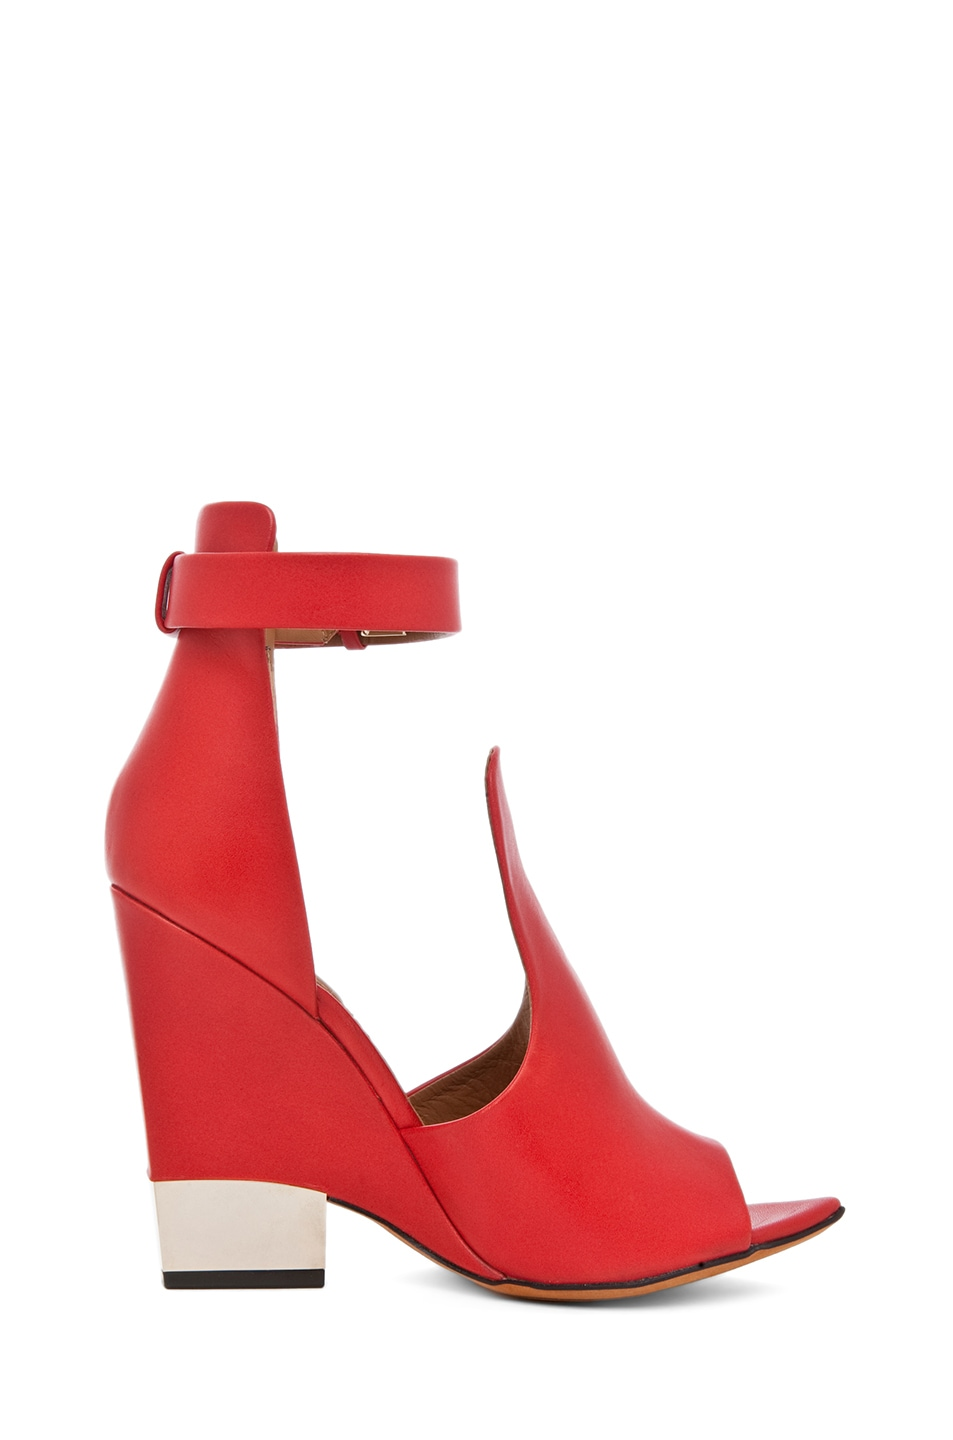 Image 5 of GIVENCHY Podium Ankle Strap Sandal in Nappa Red